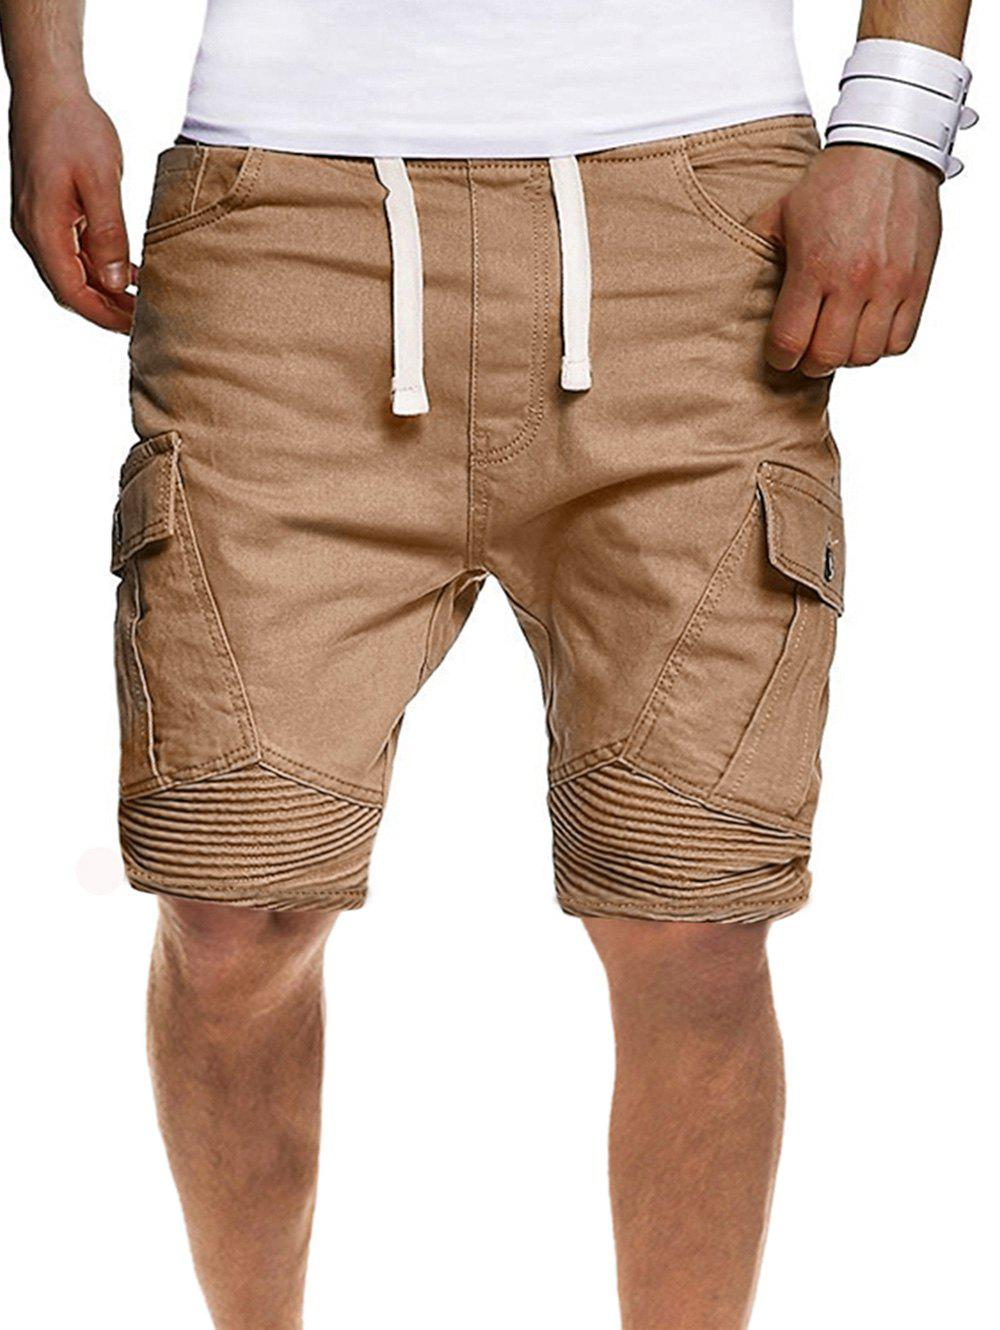 Solid Color Pleated Side Flap Pocket Shorts - KHAKI S